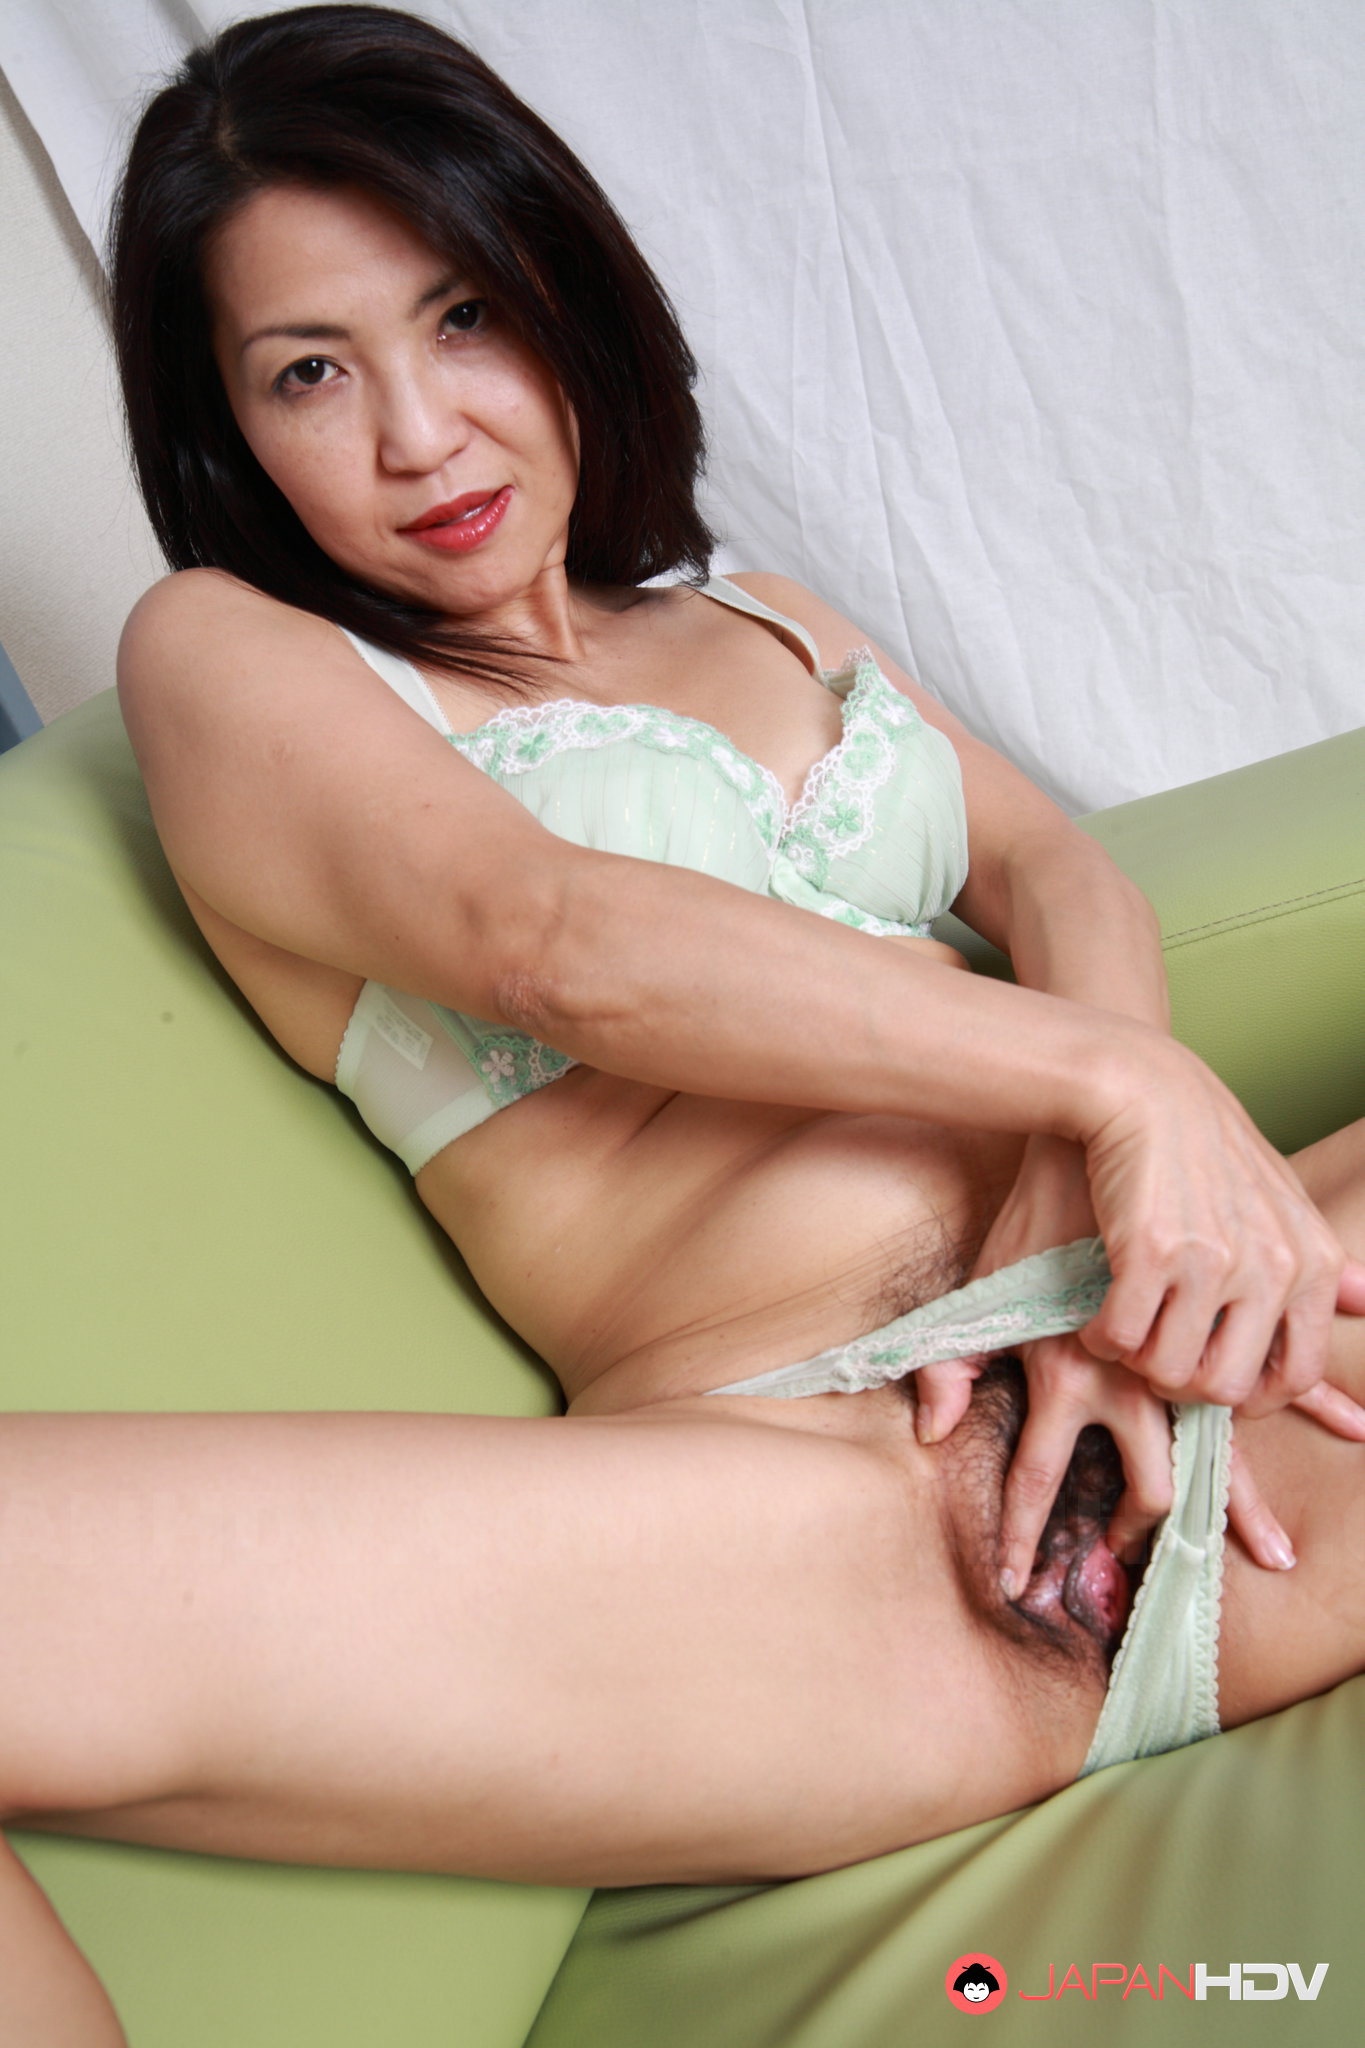 pussy japan hot